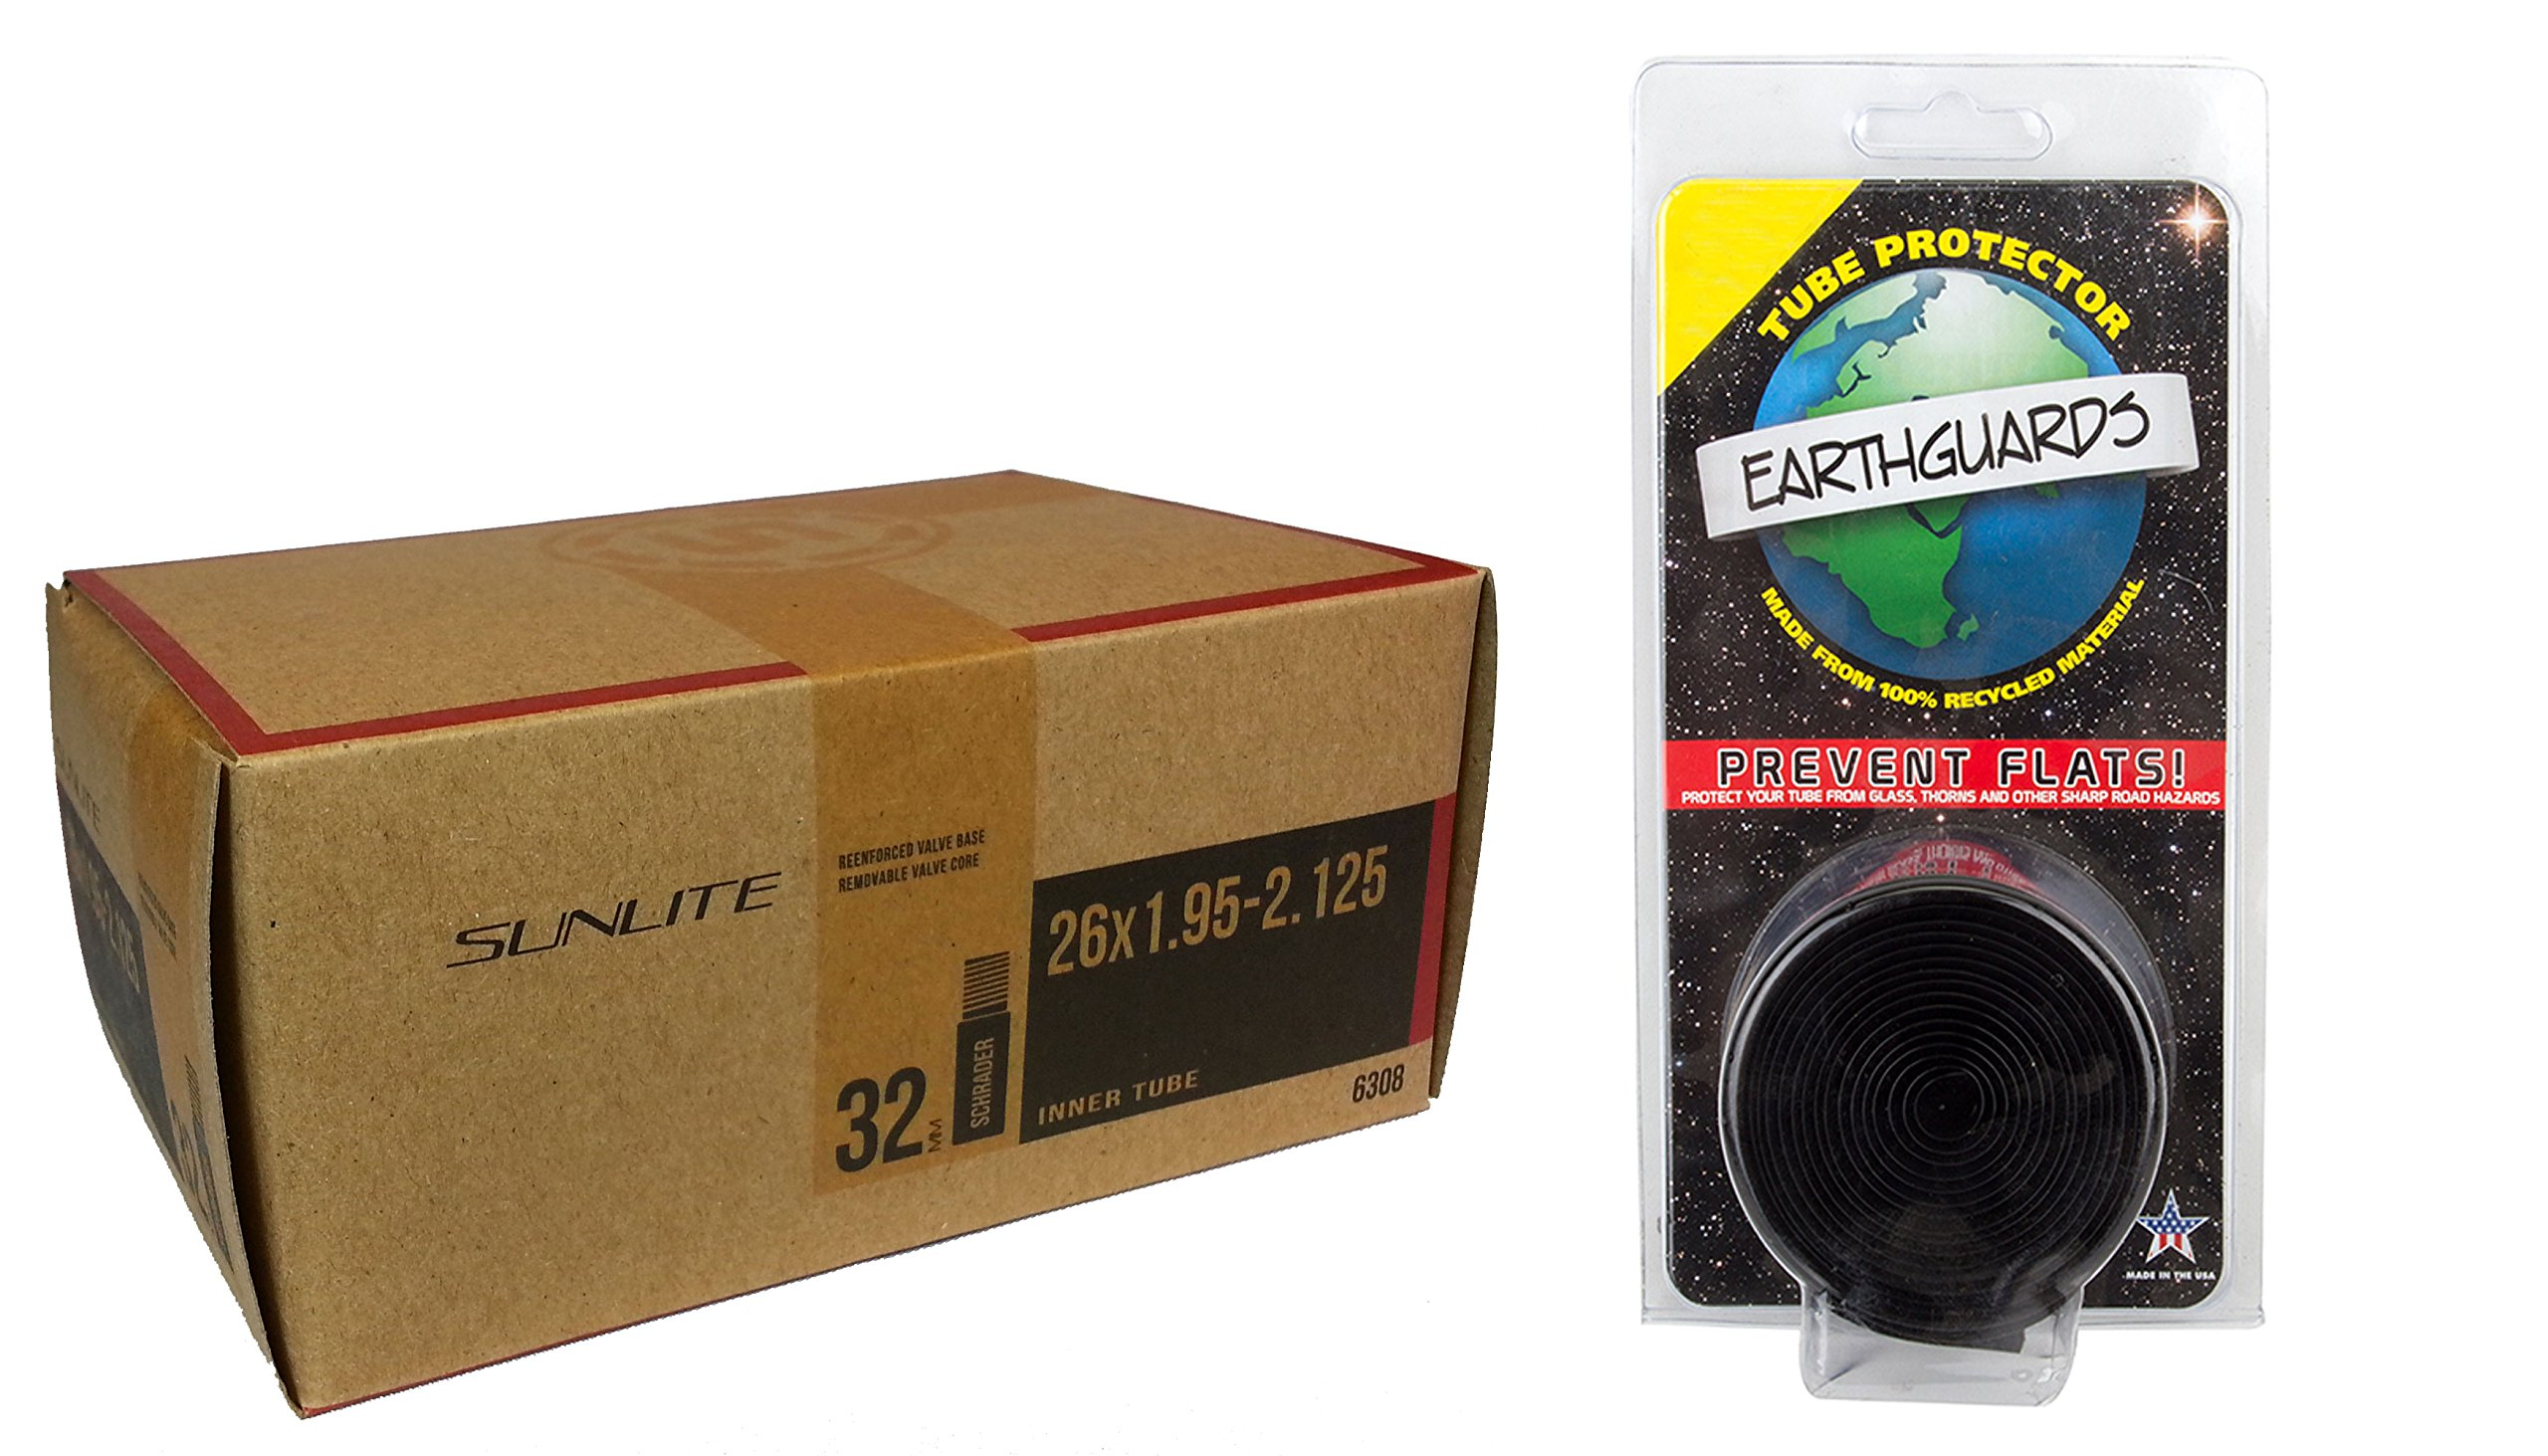 1 PACK - Tube & Tire Liner, 26 x 1.95-2.125 32mm SCHRADER Valve. Replacement tube with Earthguard tire liner.